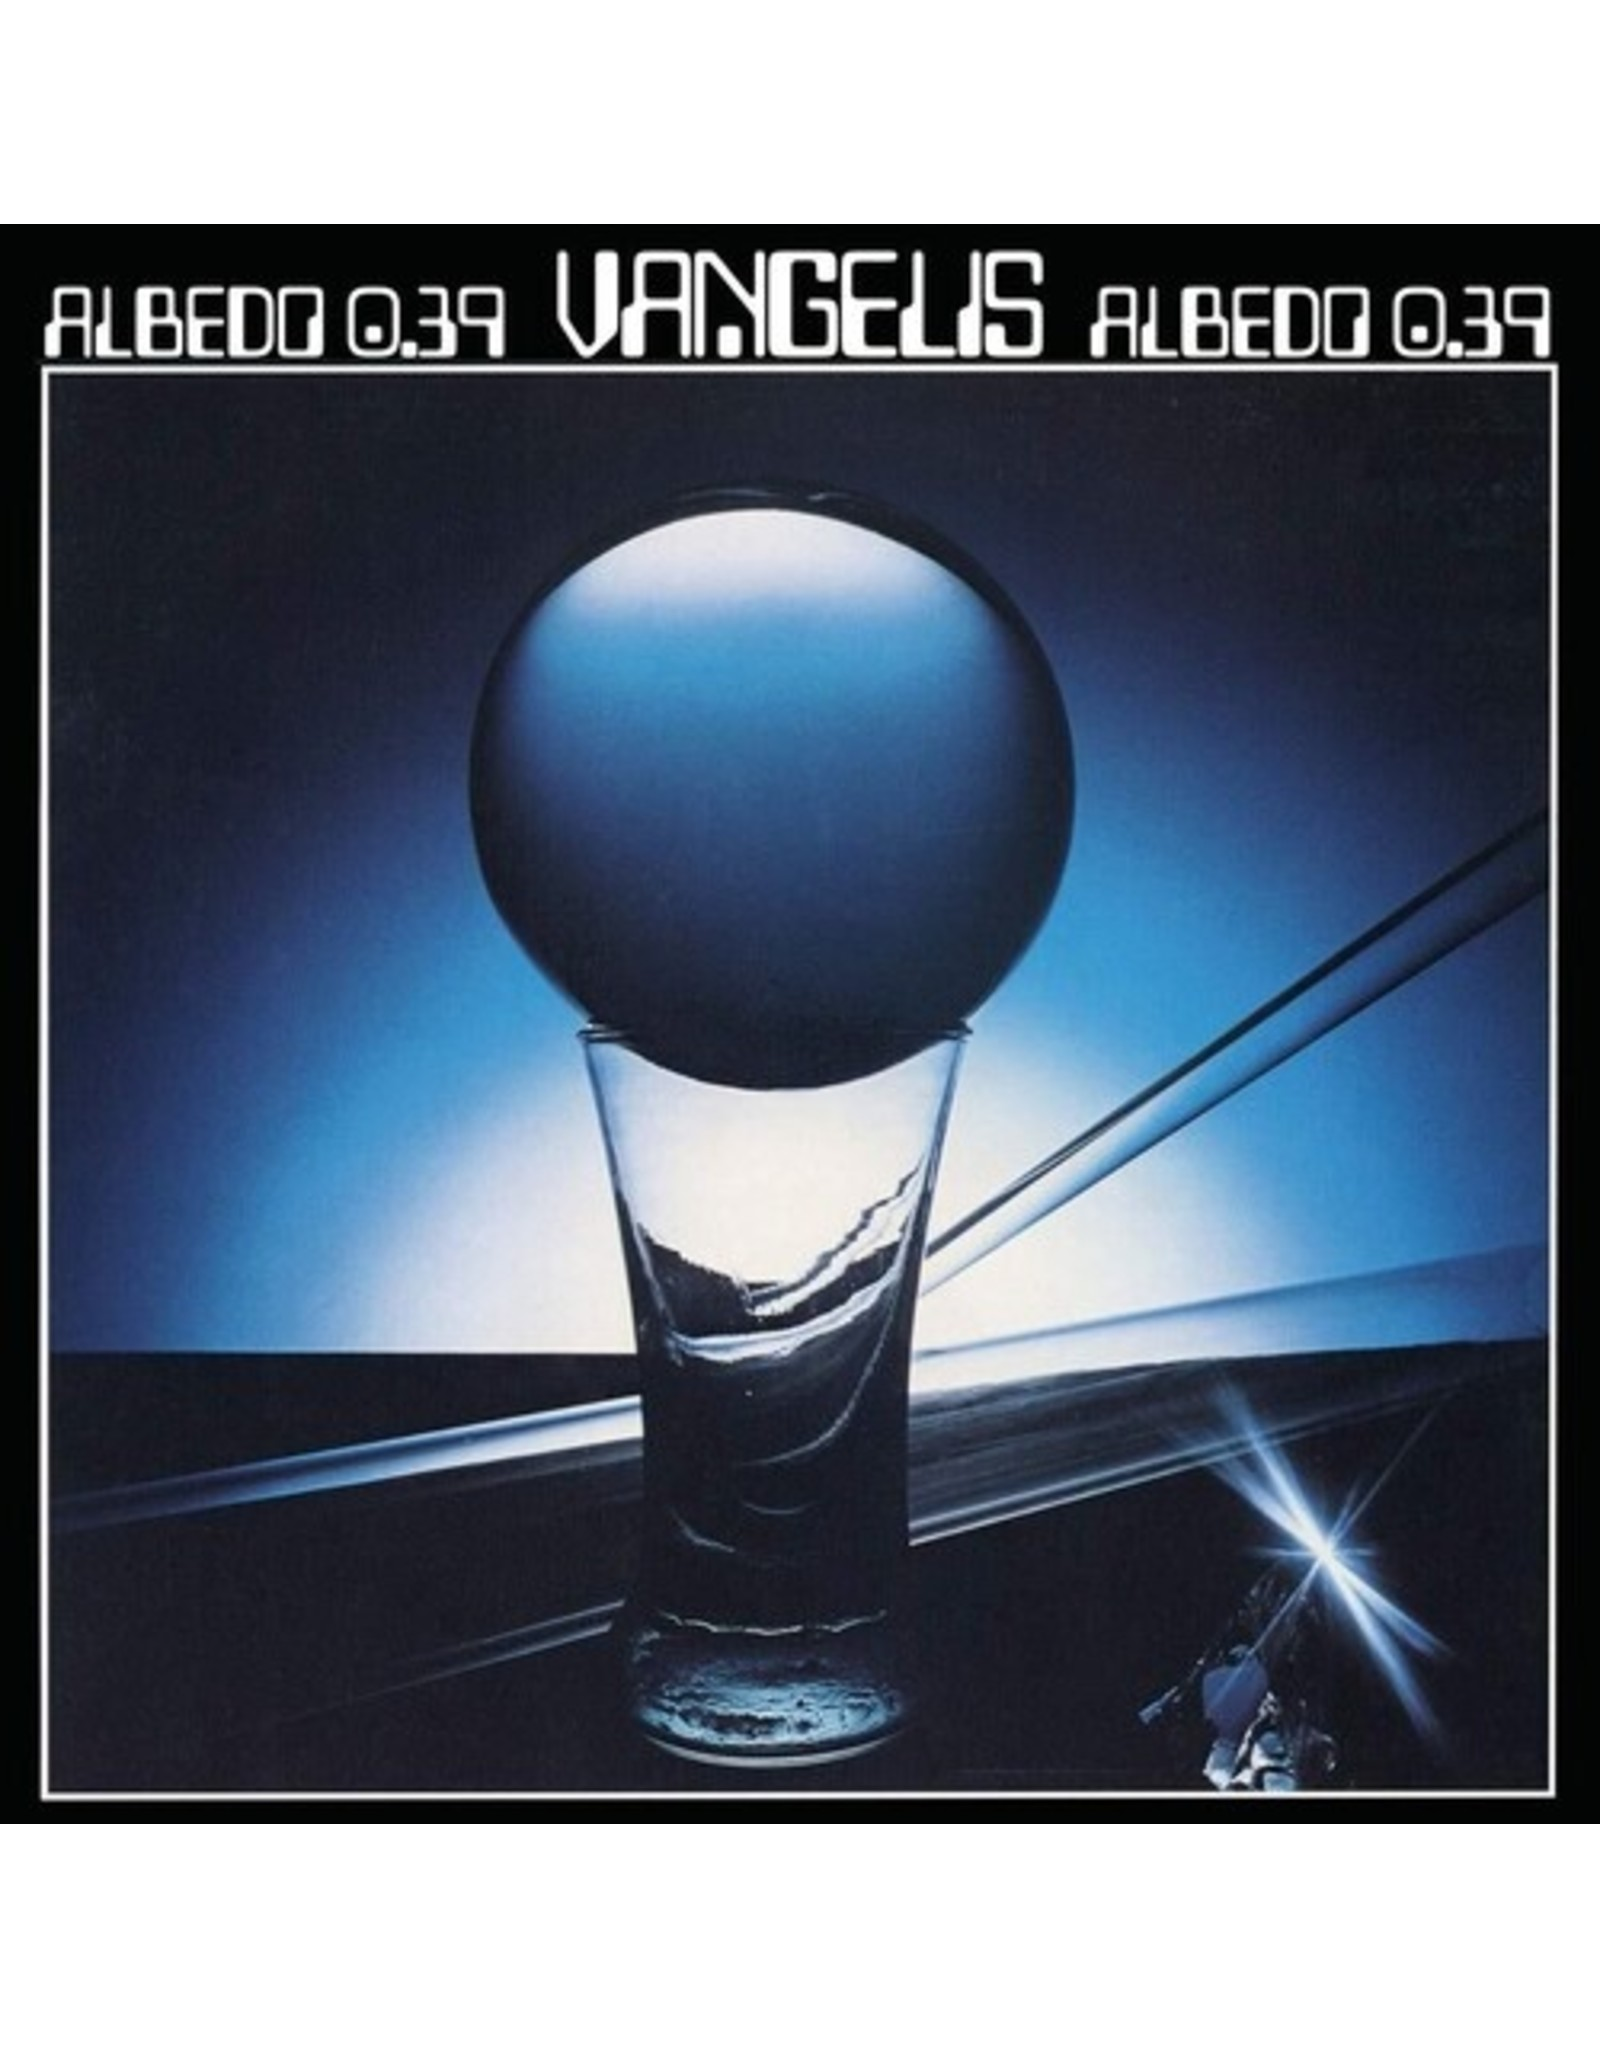 Vangelis - Albedo 0.39 (Ltd. Color) LP